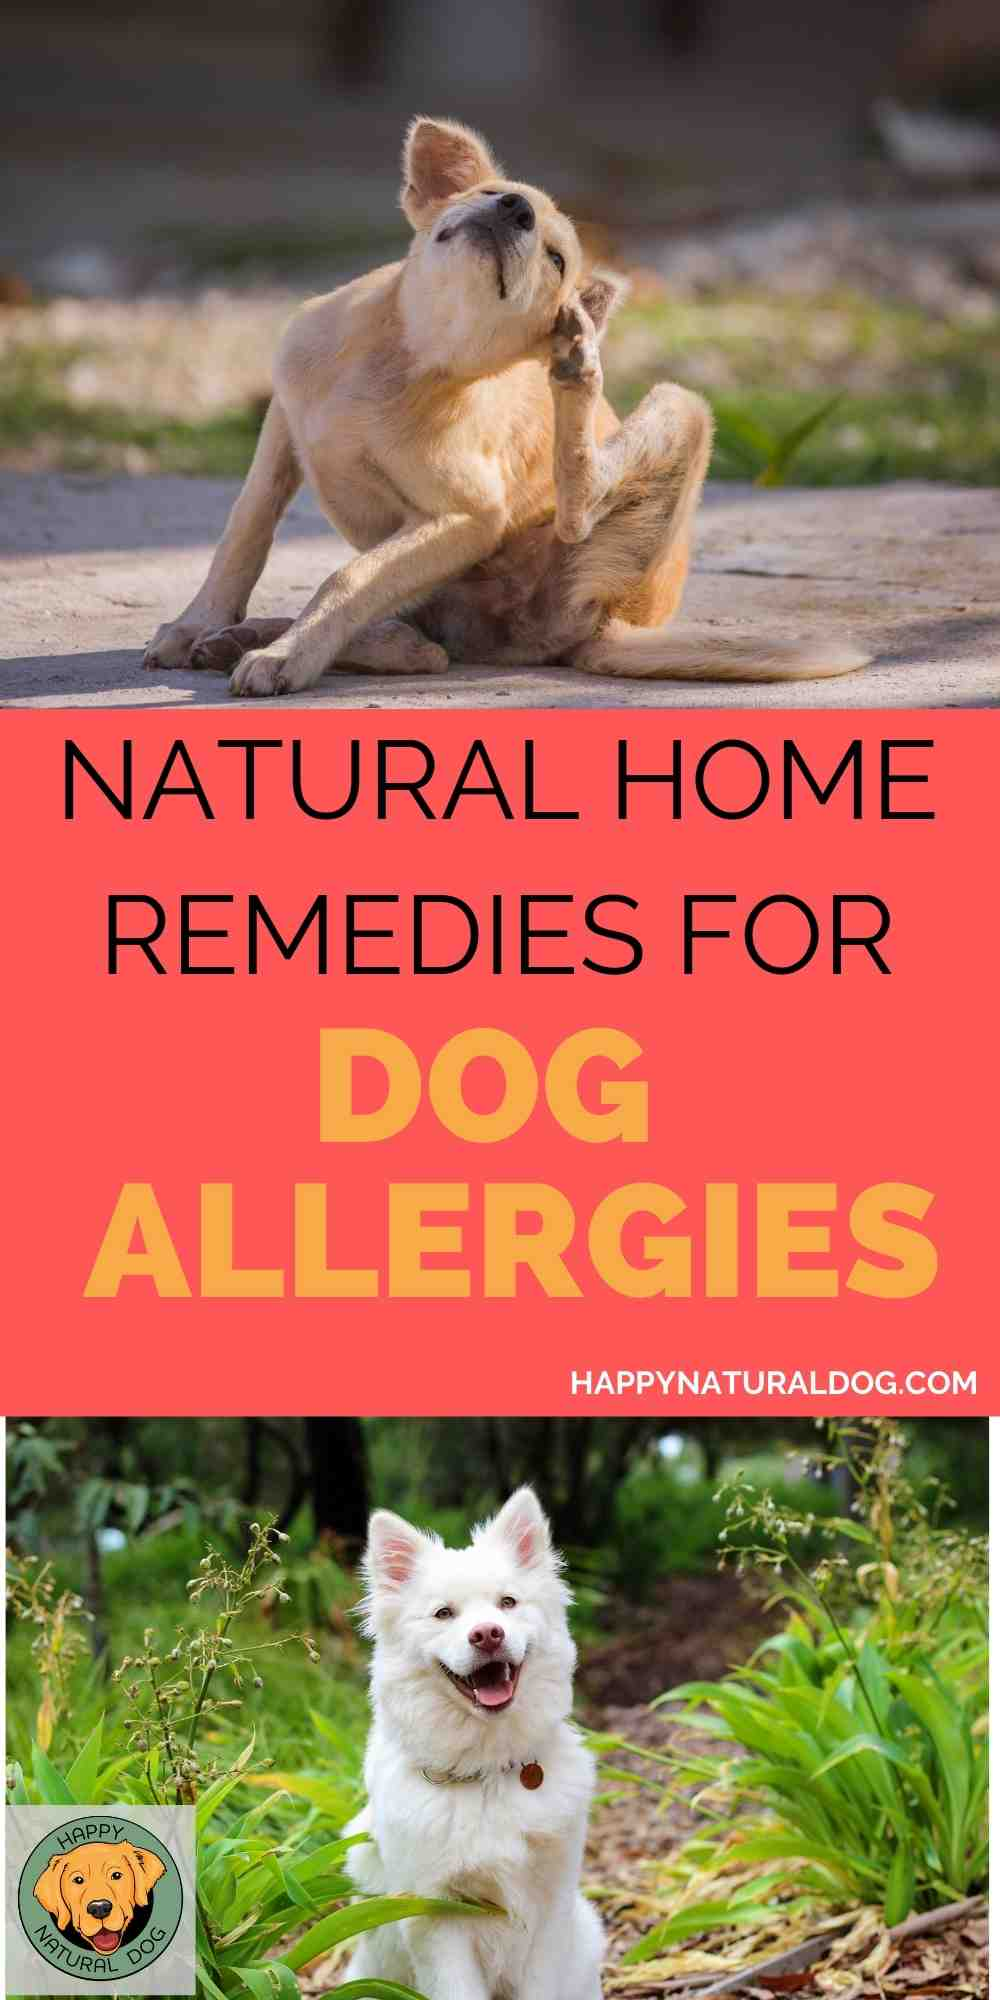 Natural home remedies for dog allergies pin 2